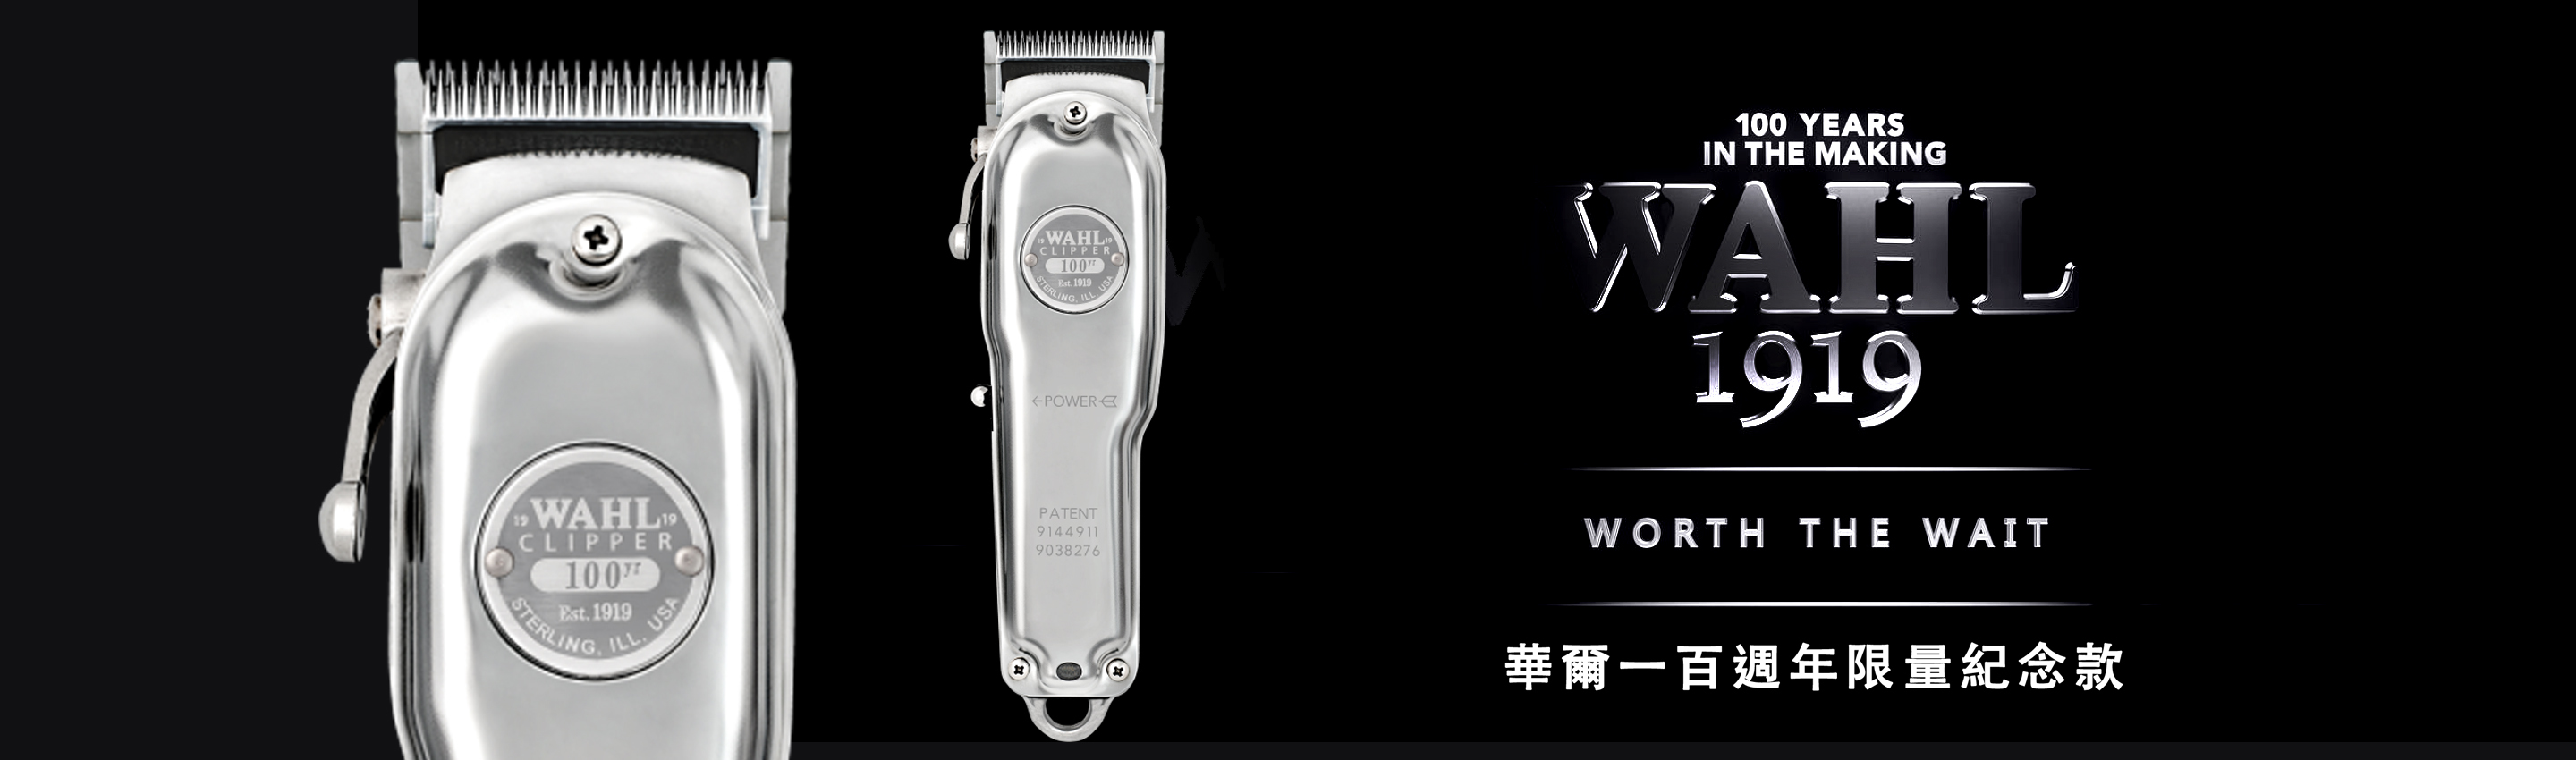 WAHL 100 週年紀念電剪(華爾/100 Year Anniversary Cordless Senior)